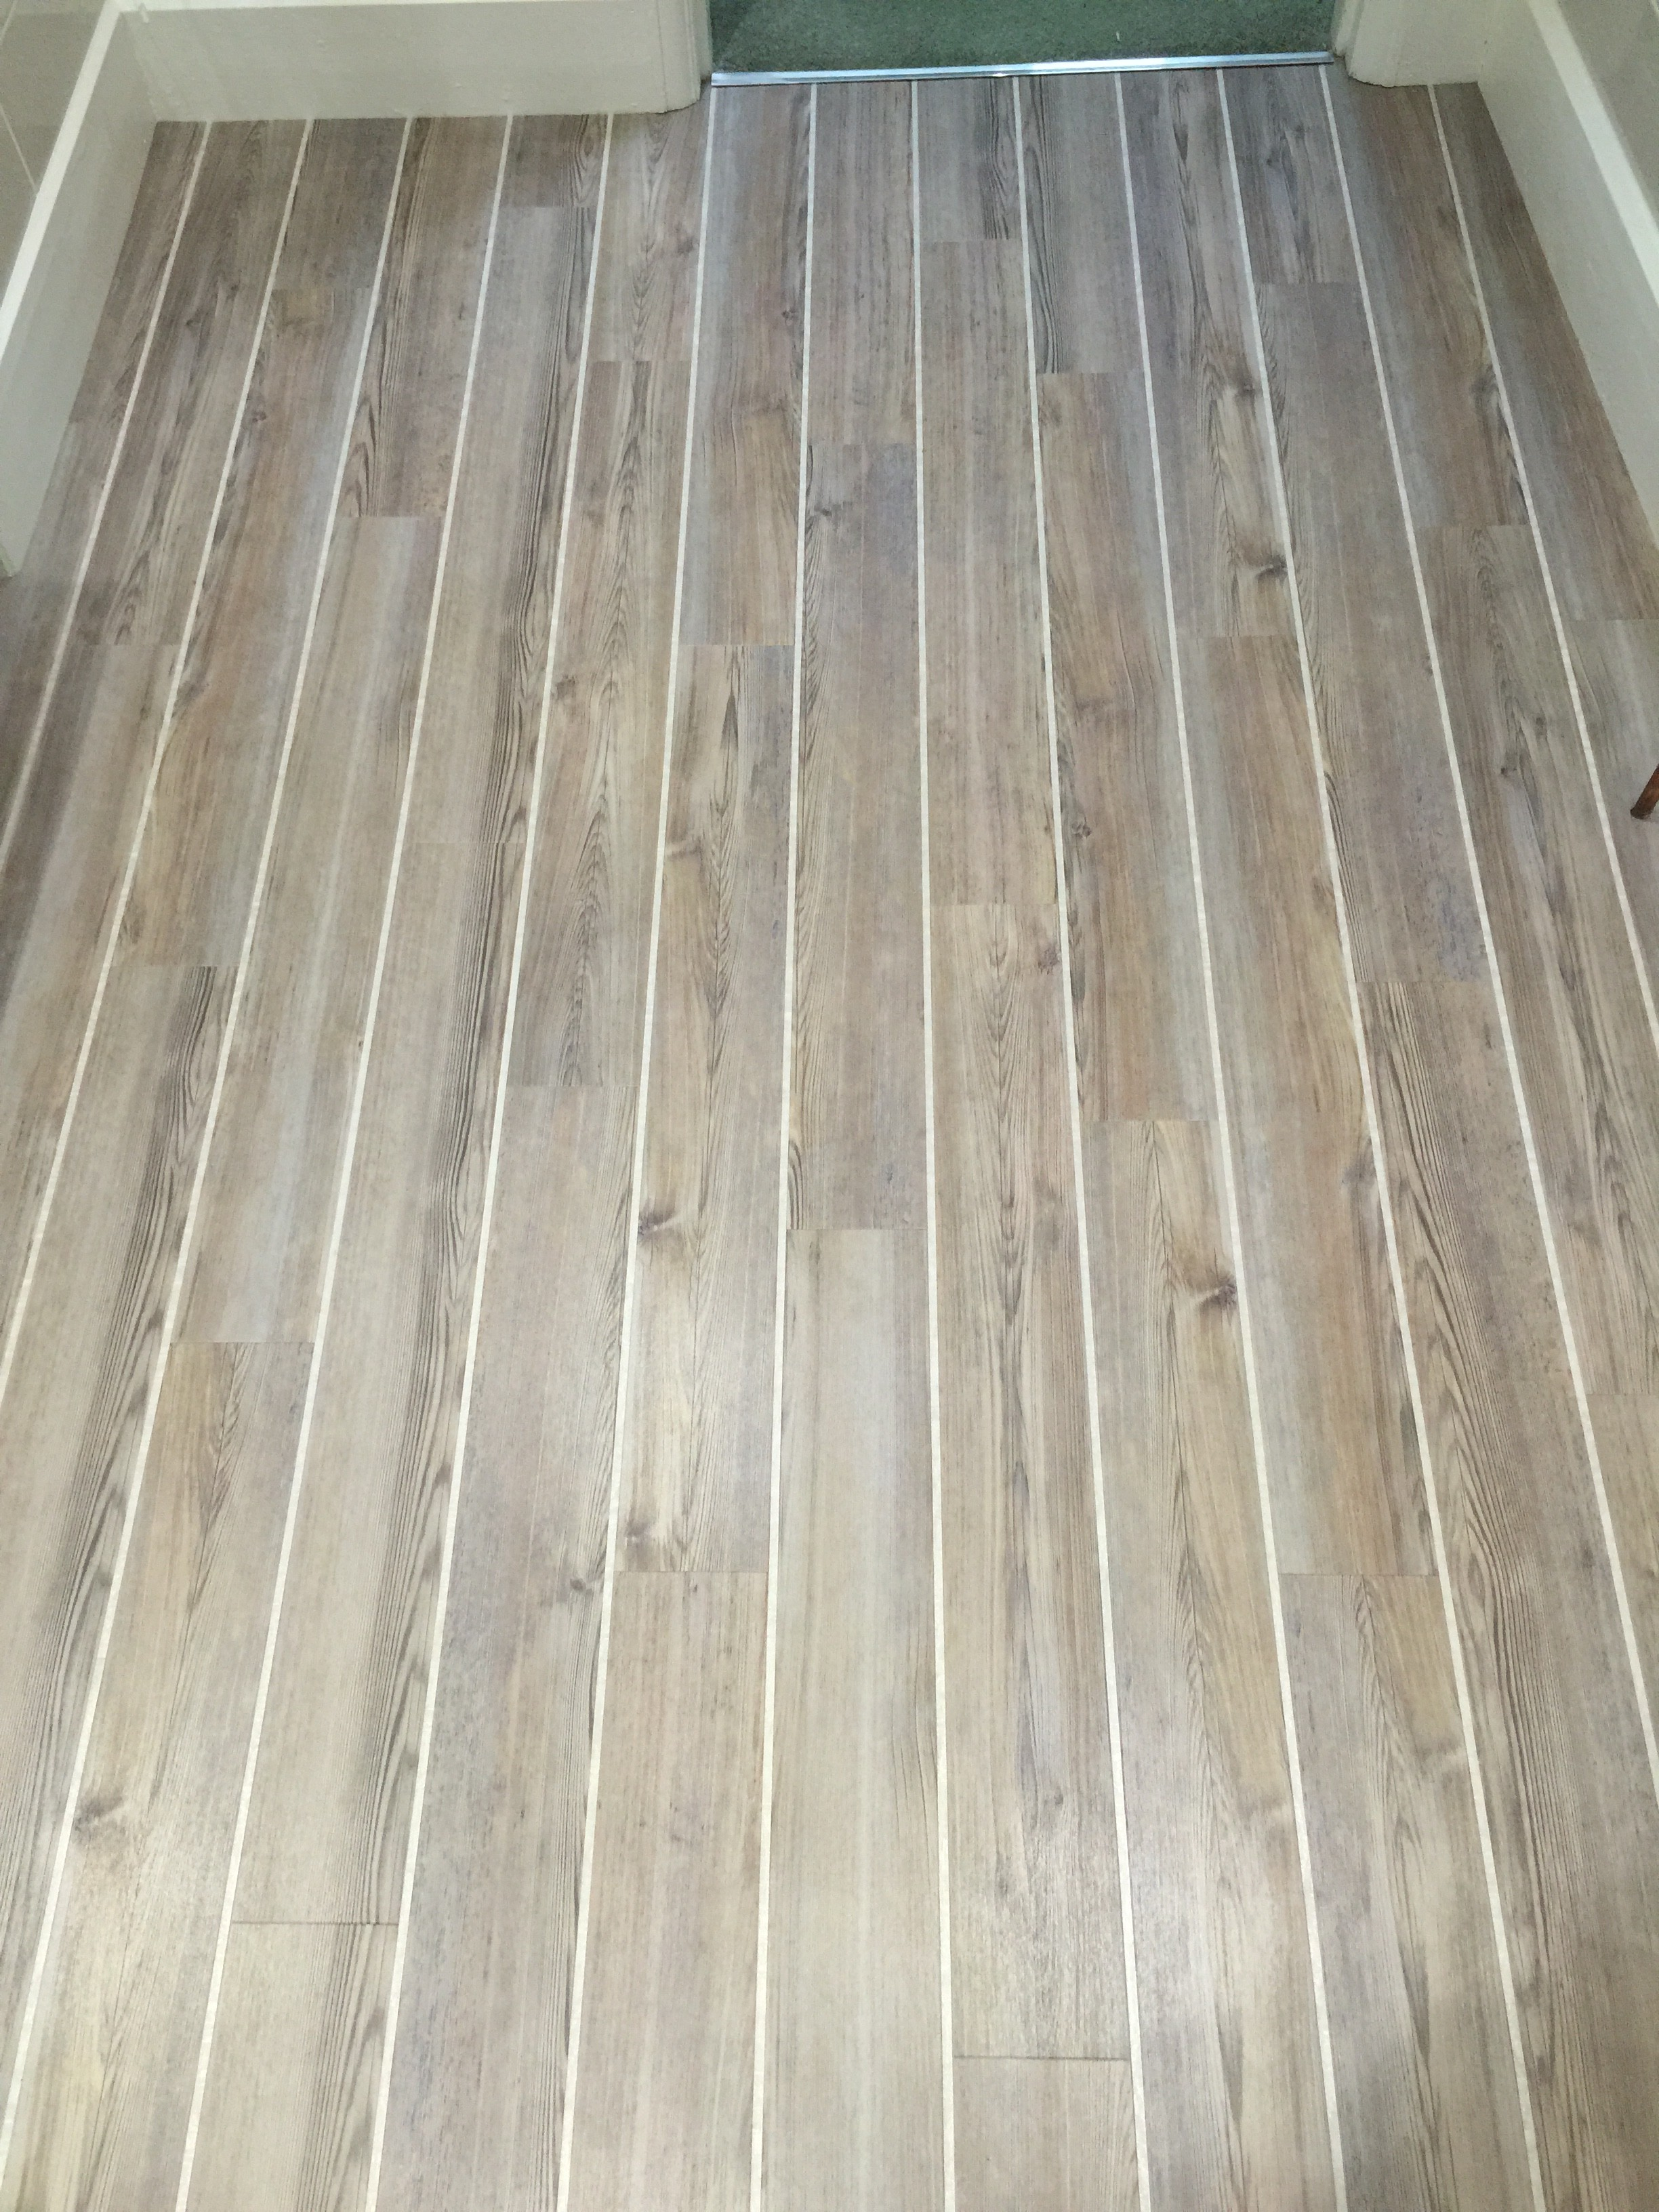 How to remove amtico flooring amtico marine flooring for Removing amtico flooring